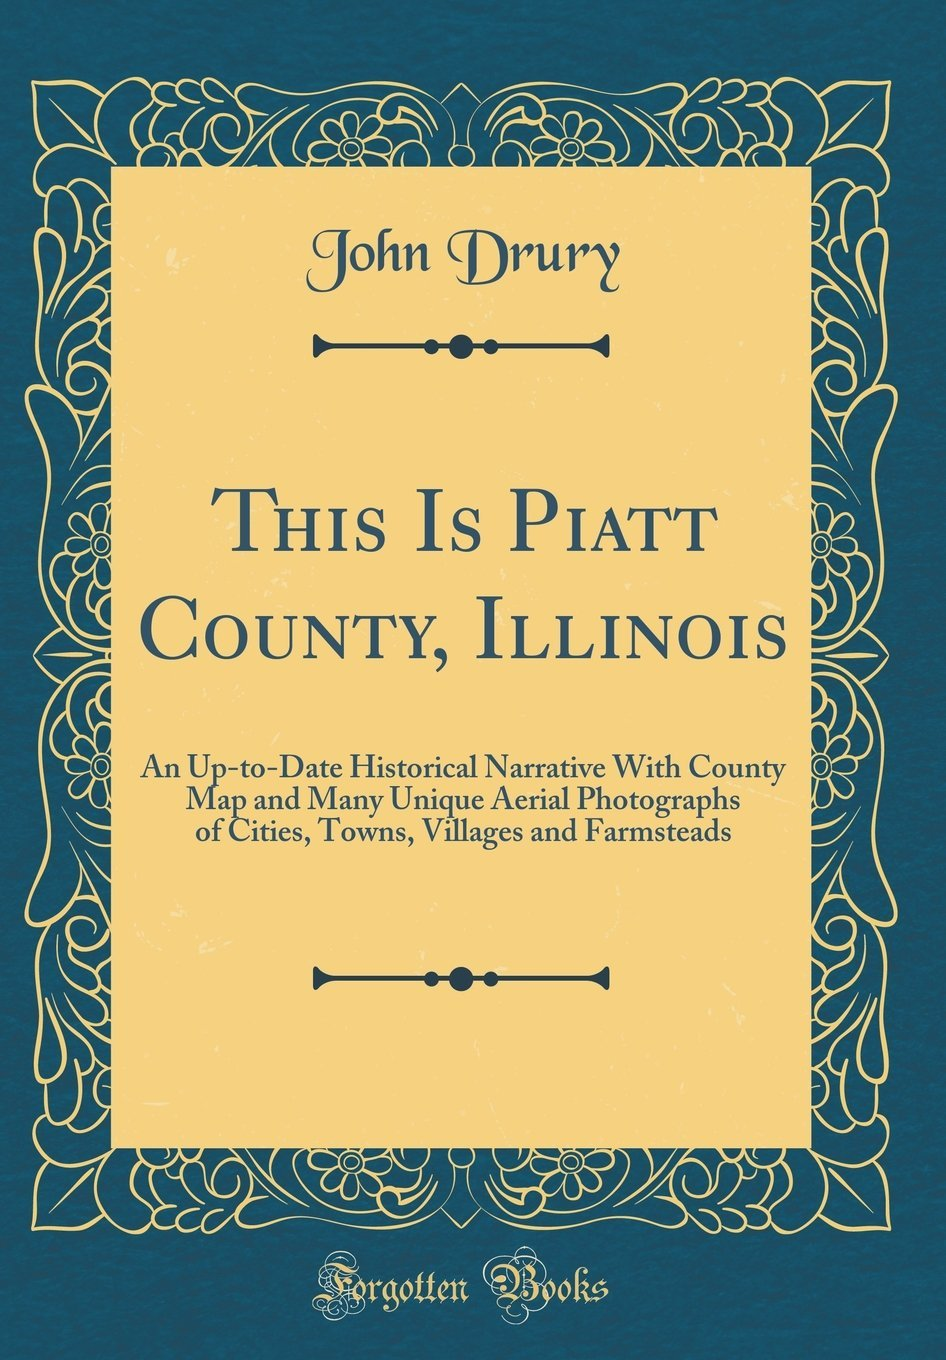 This Is Piatt County, Illinois: An Up-To-Date Historical